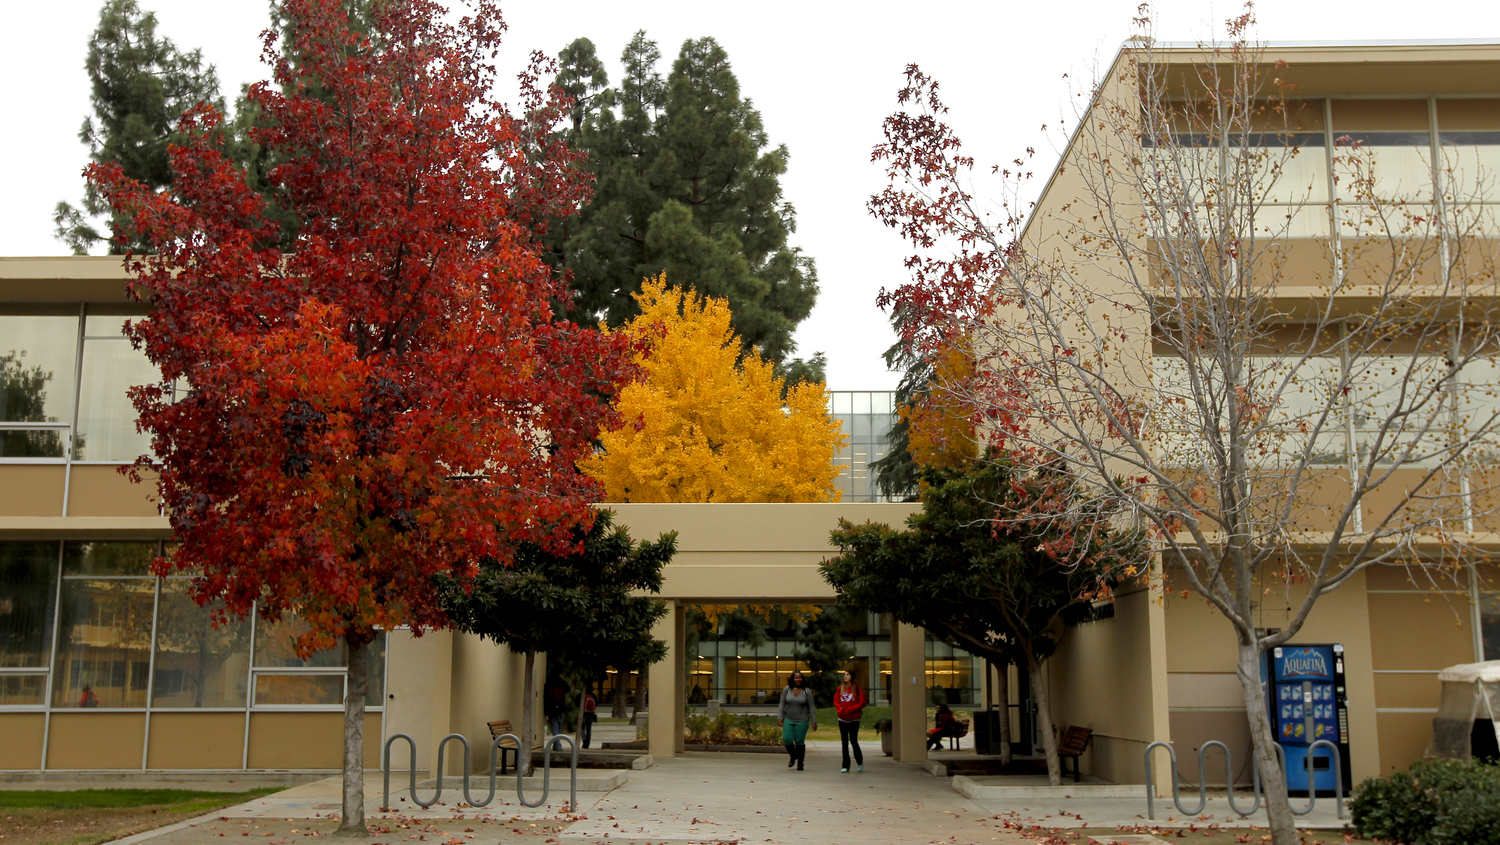 Red, yellow, and green leaves on trees. Two female students walking in the quad area of campus.